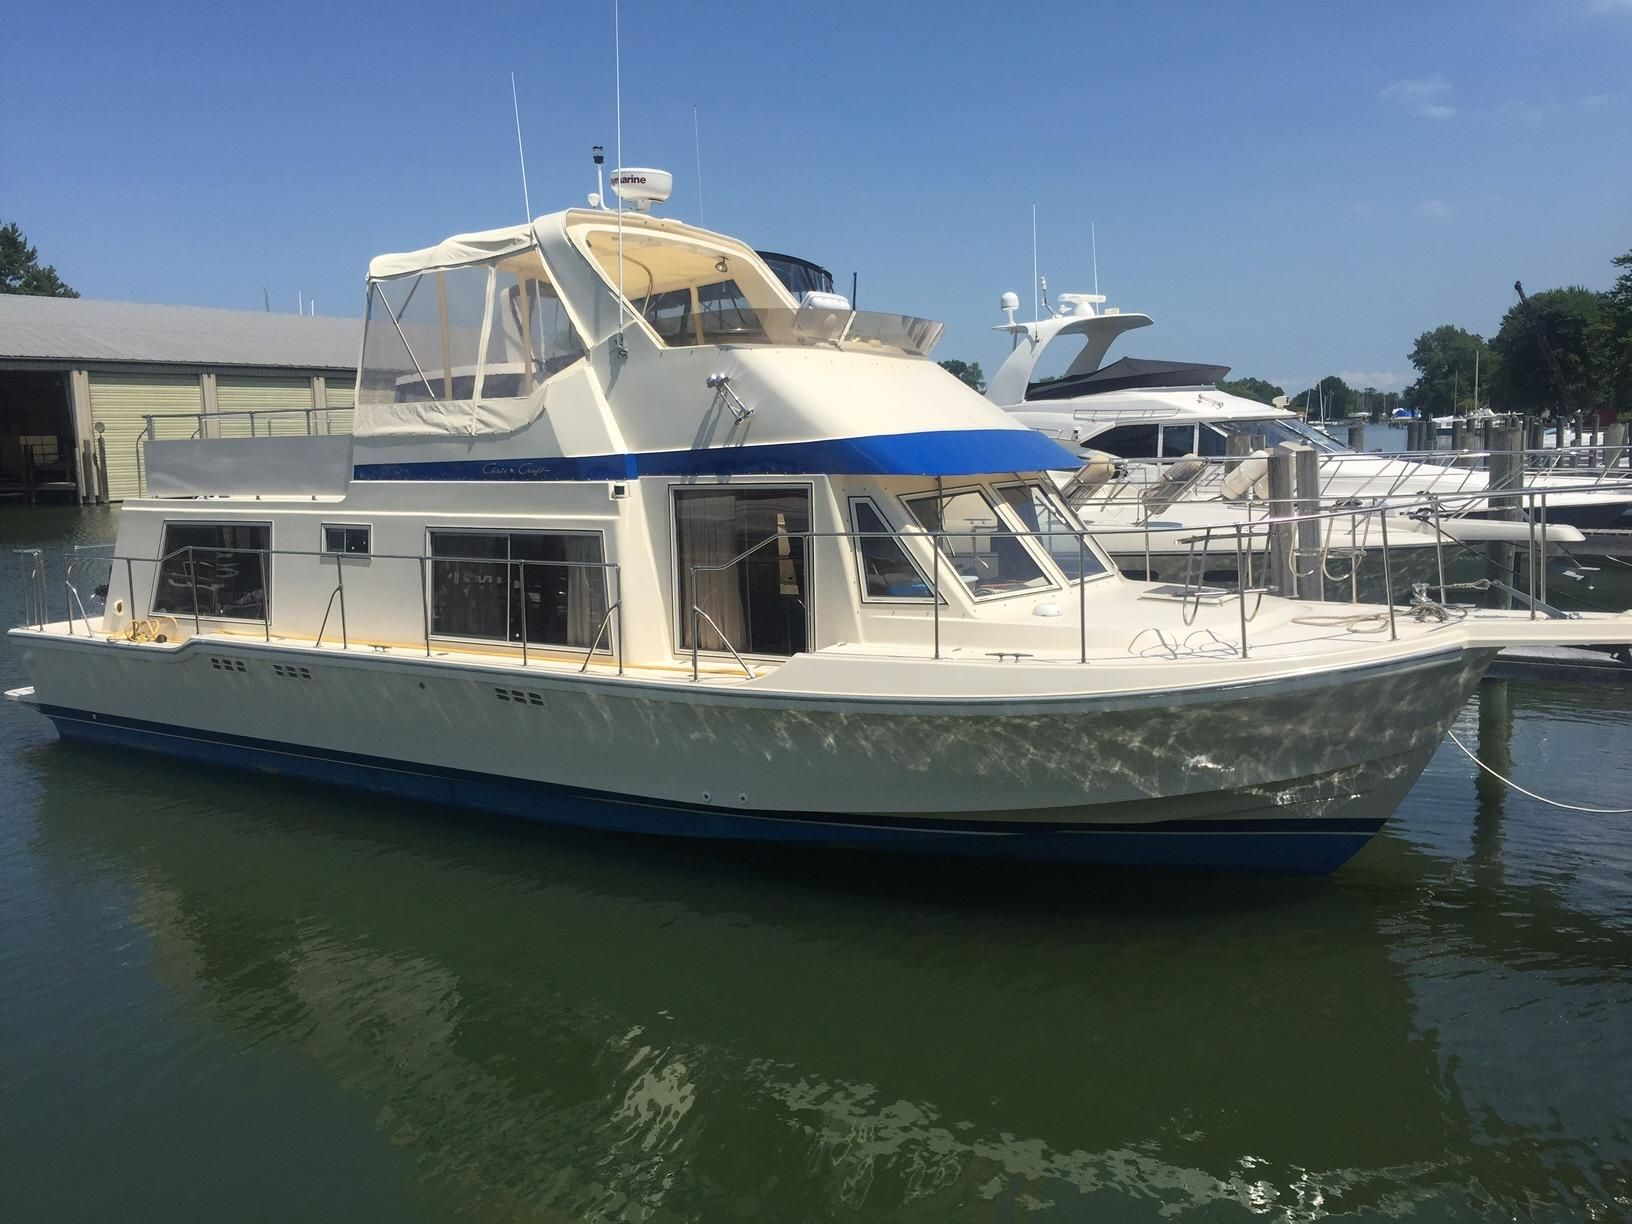 1985 Chris Craft Yacht Home Power Boat For Sale Www